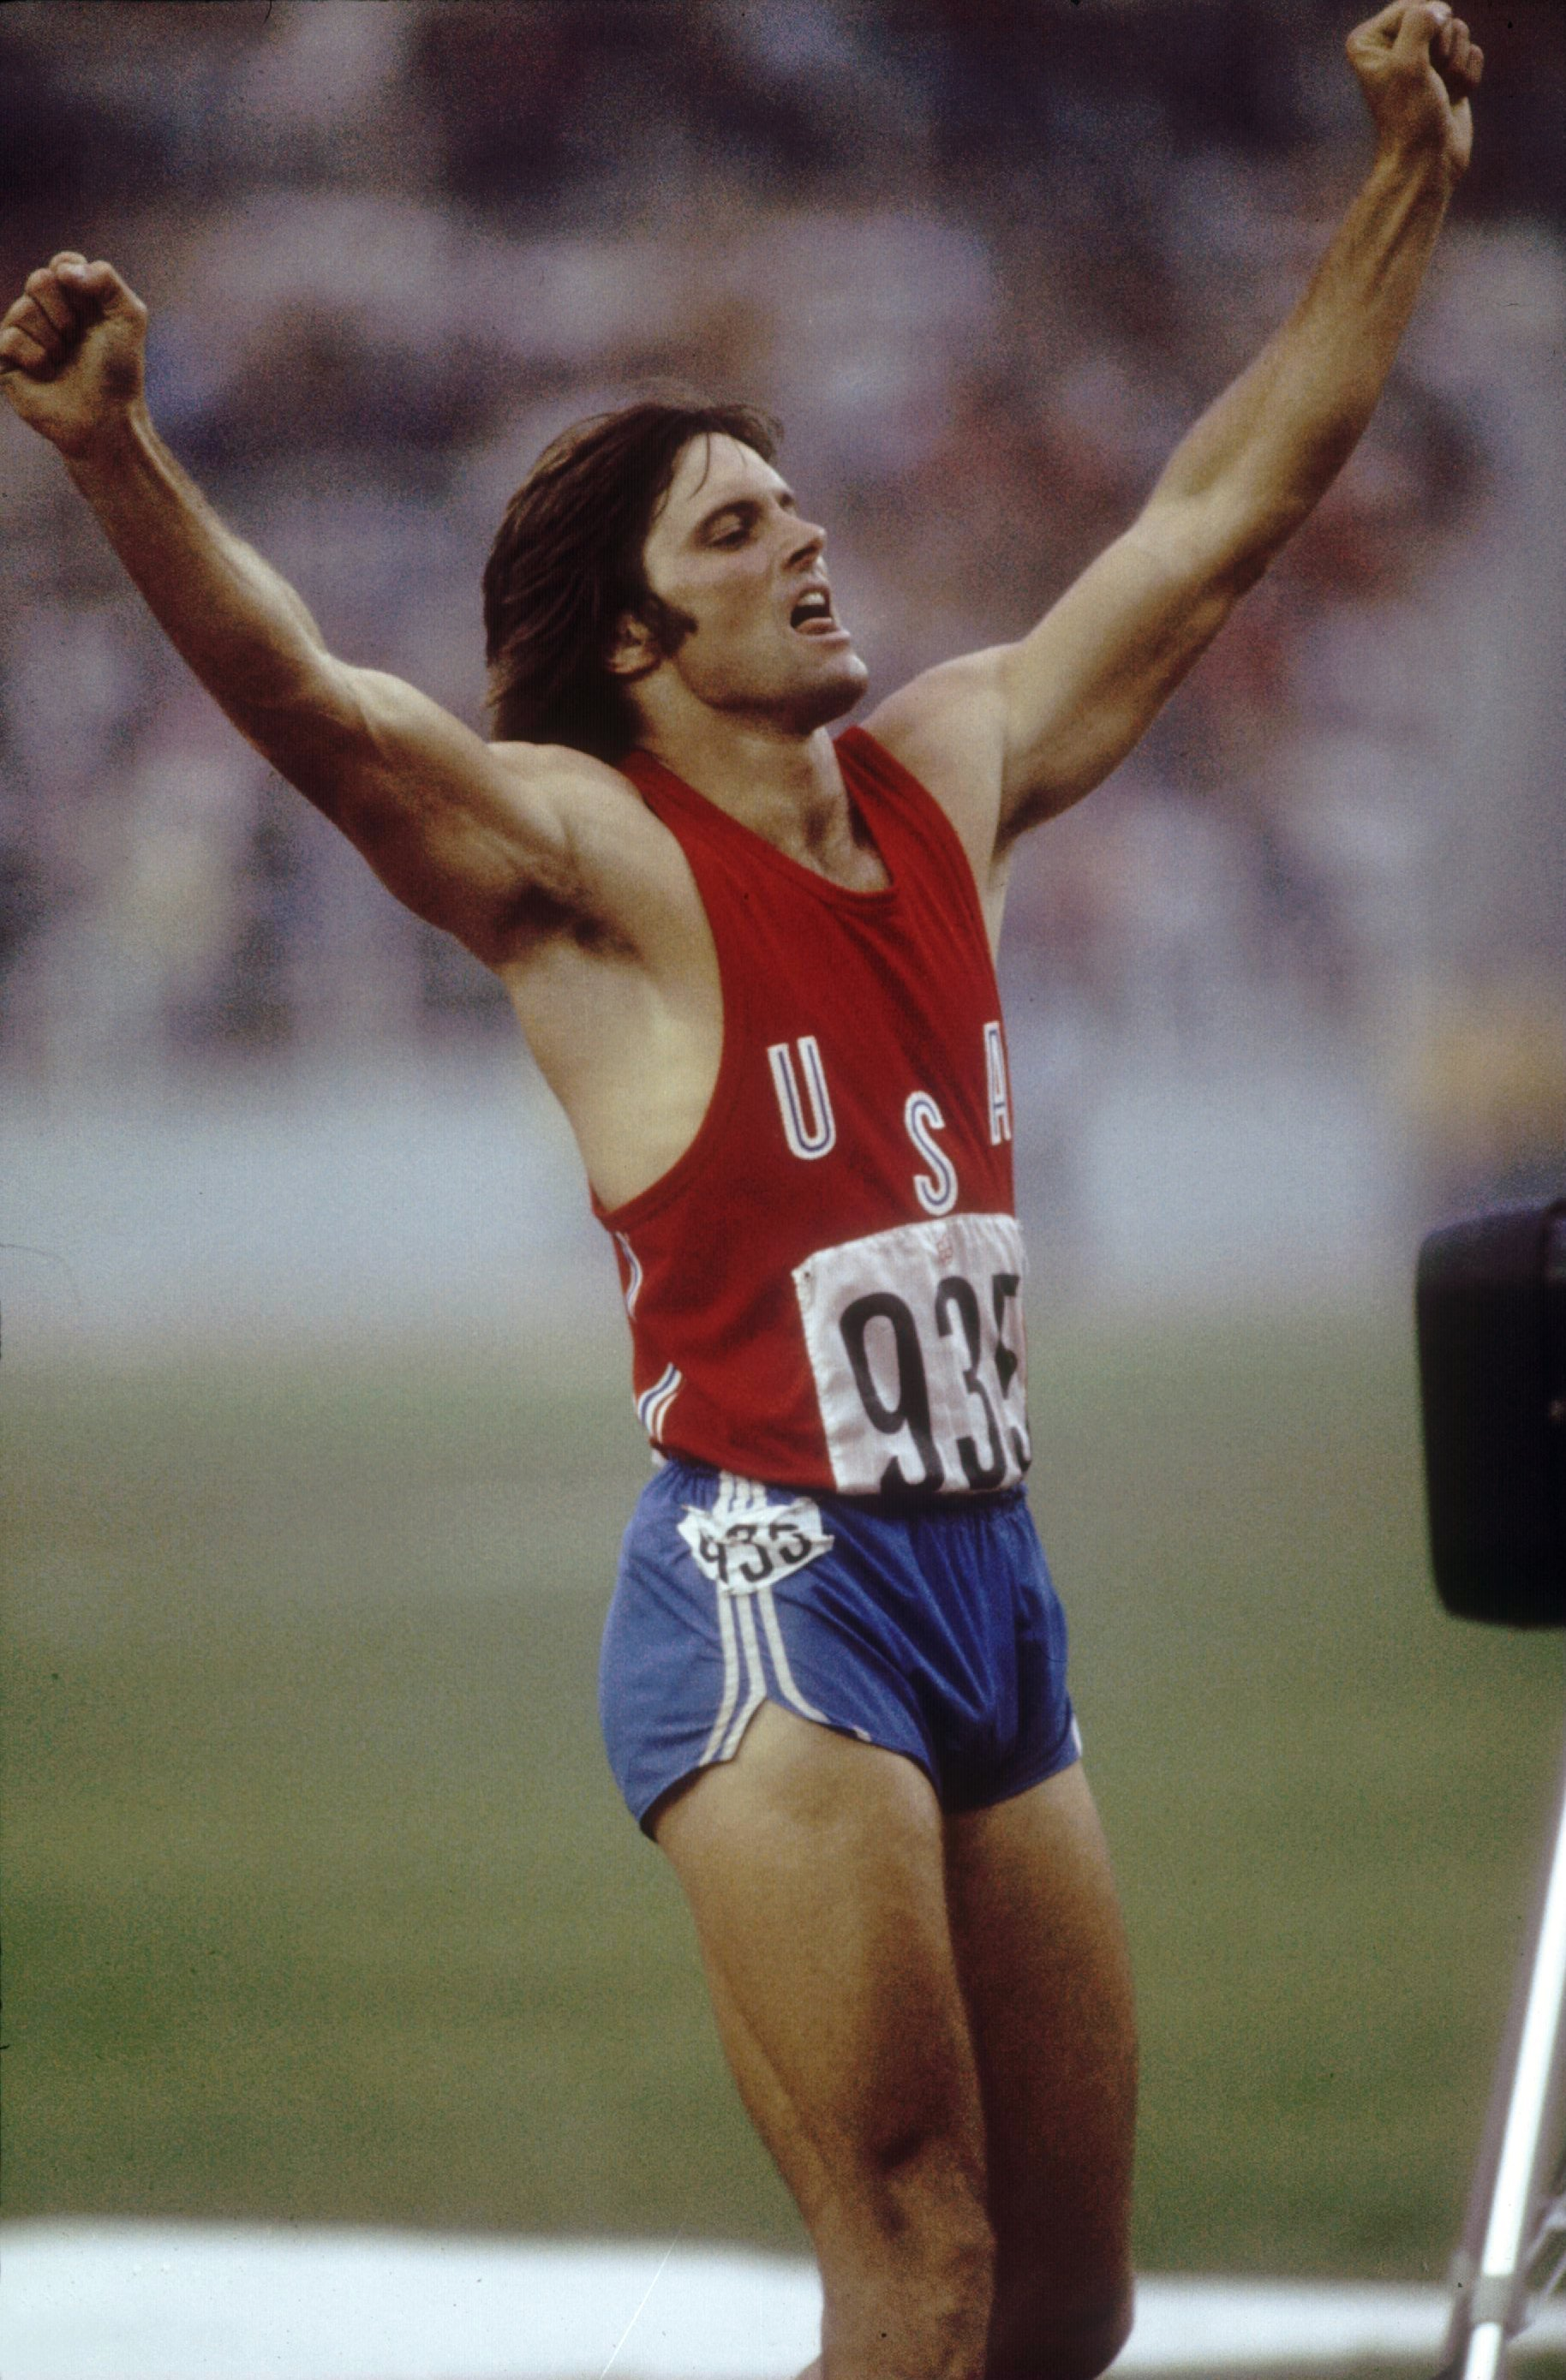 Bruce Jenner of the USA celebrates during his record setting performance in the decathlon in the 1976, Summer Olympics in Montreal, Canada. | Source: Getty Images.